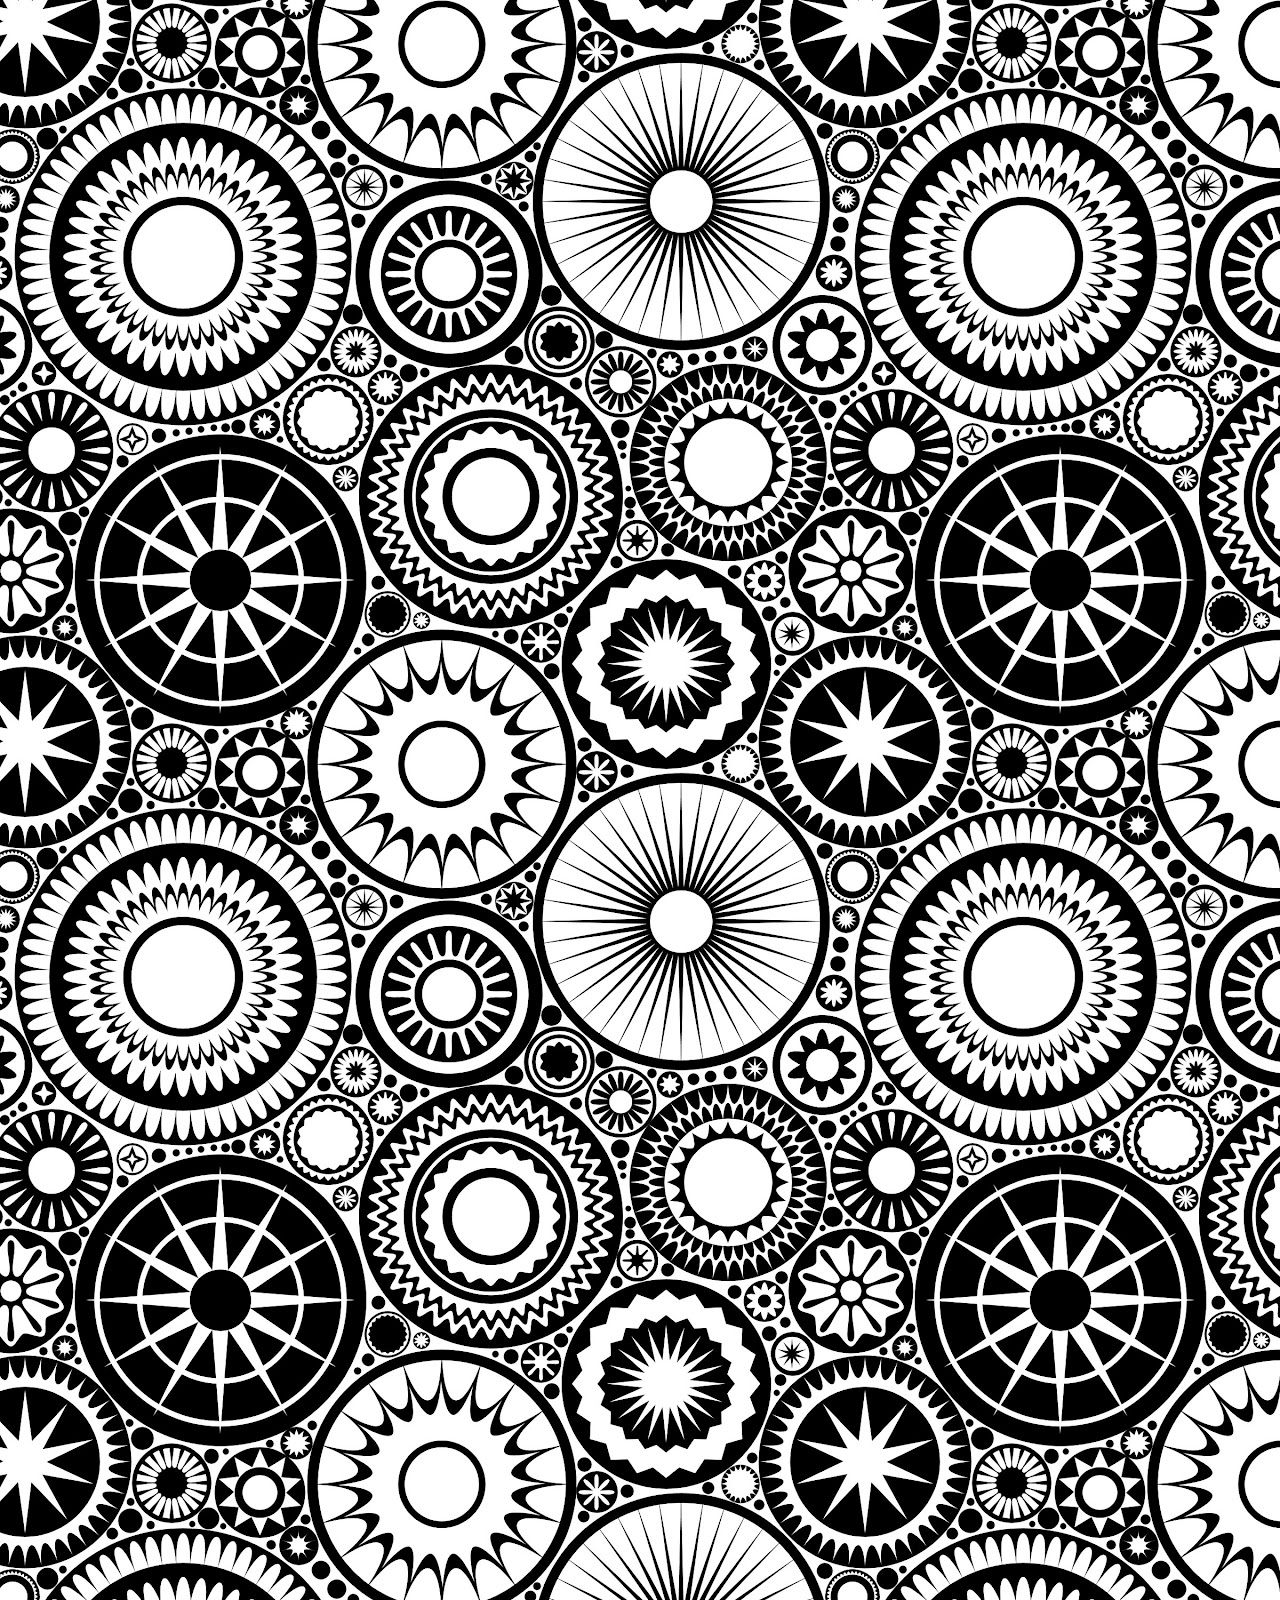 Hard mandala coloring pages for adults - Coloring For Stress Relief Free Download Streaming Coloring Pages For Adultsdo Eatmandala